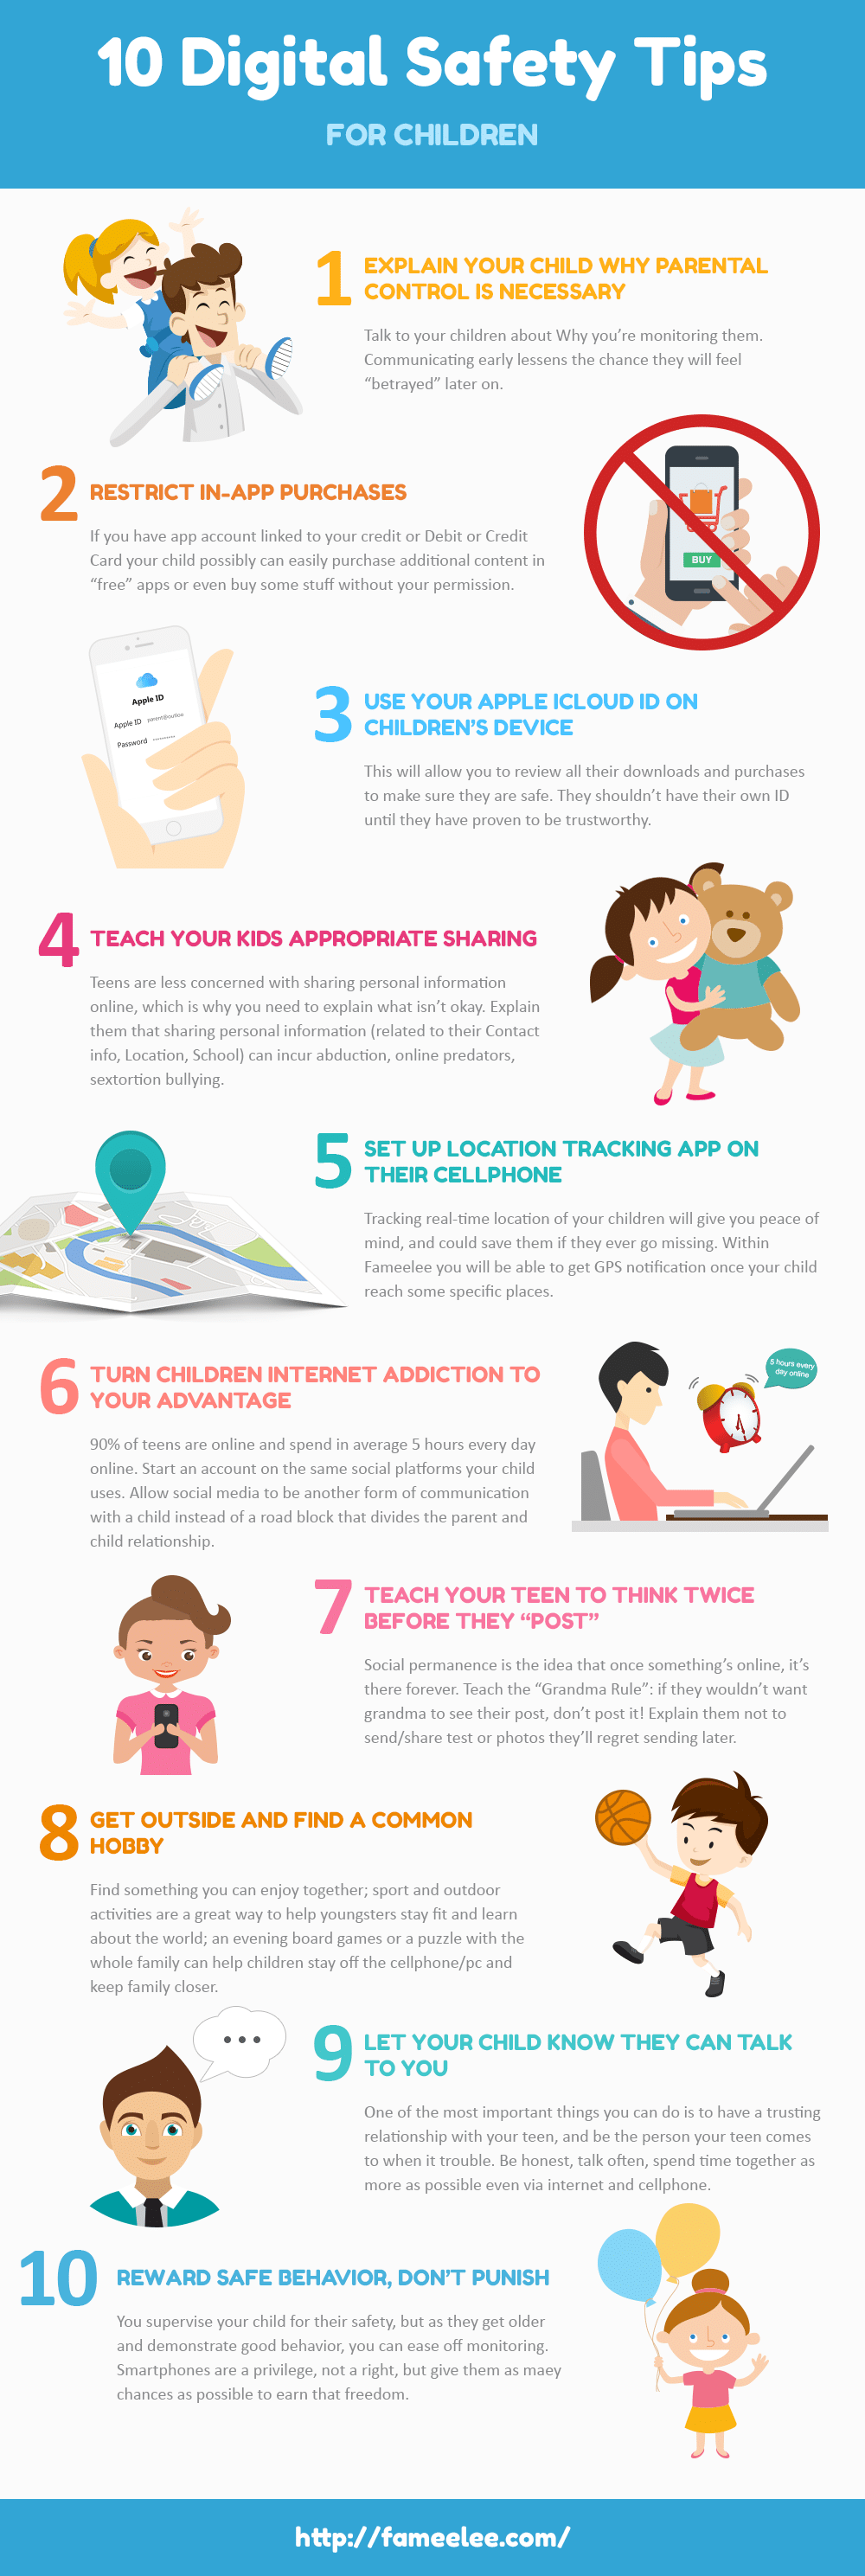 digital safety for children infographic